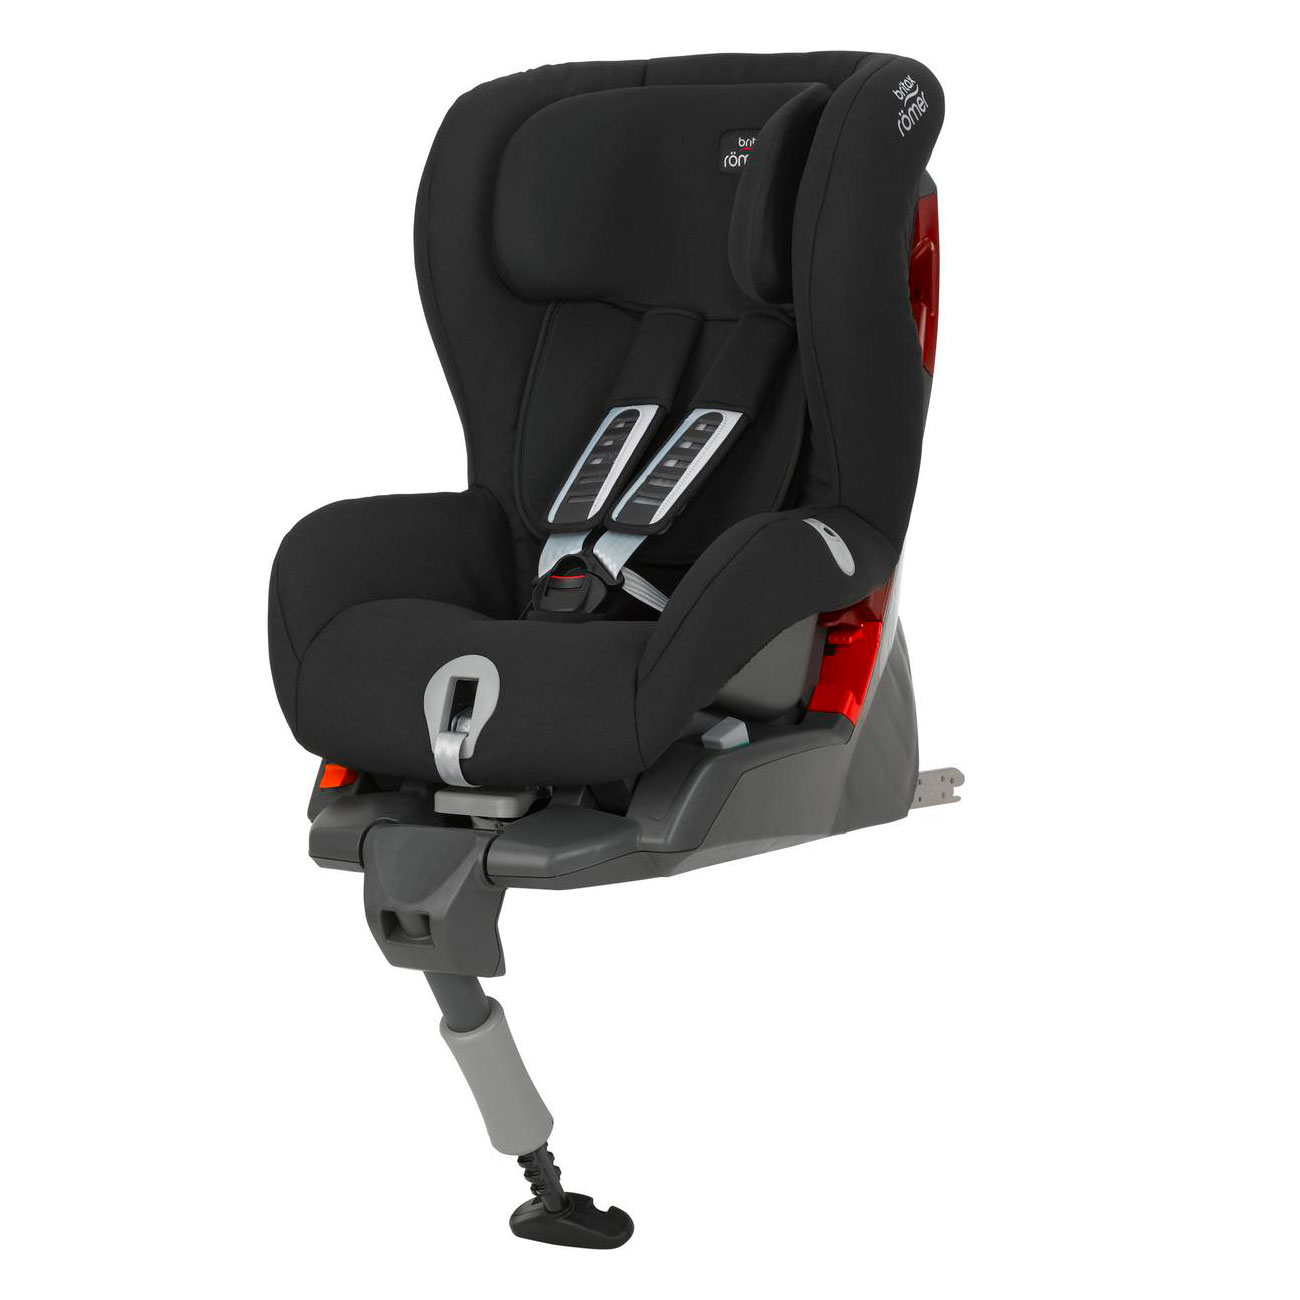 Автокресло Britax Romer SafeFix plus Cosmos Black<br>